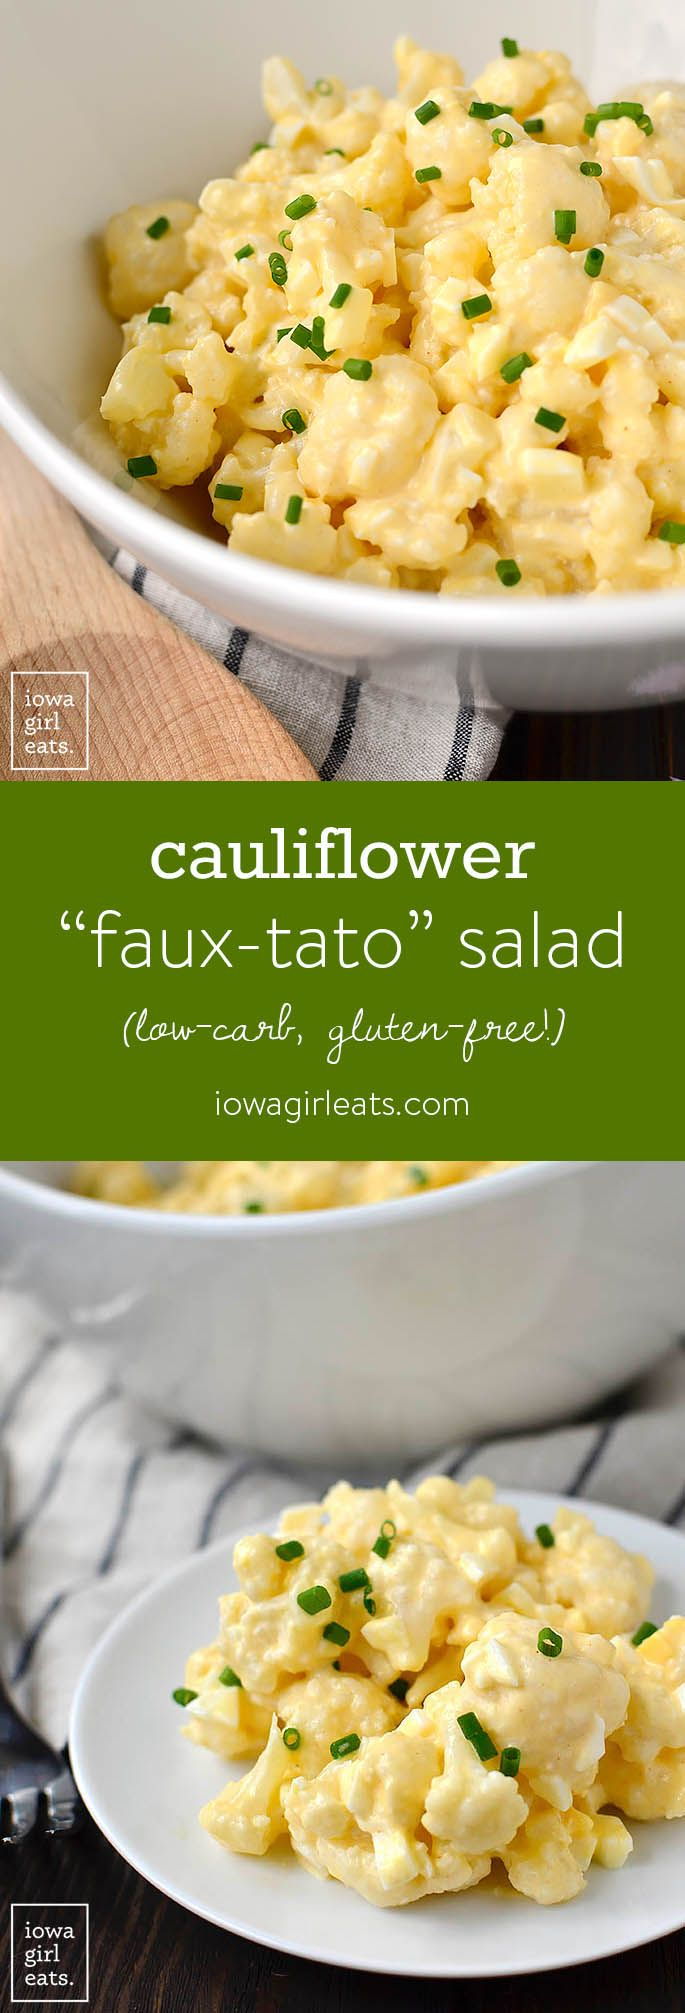 Cauliflower Faux-tato Salad is a low-carb alternative to potato salad. This classic, creamy, gluten-free side dish is absolutely delicious! | iowagirleats.com